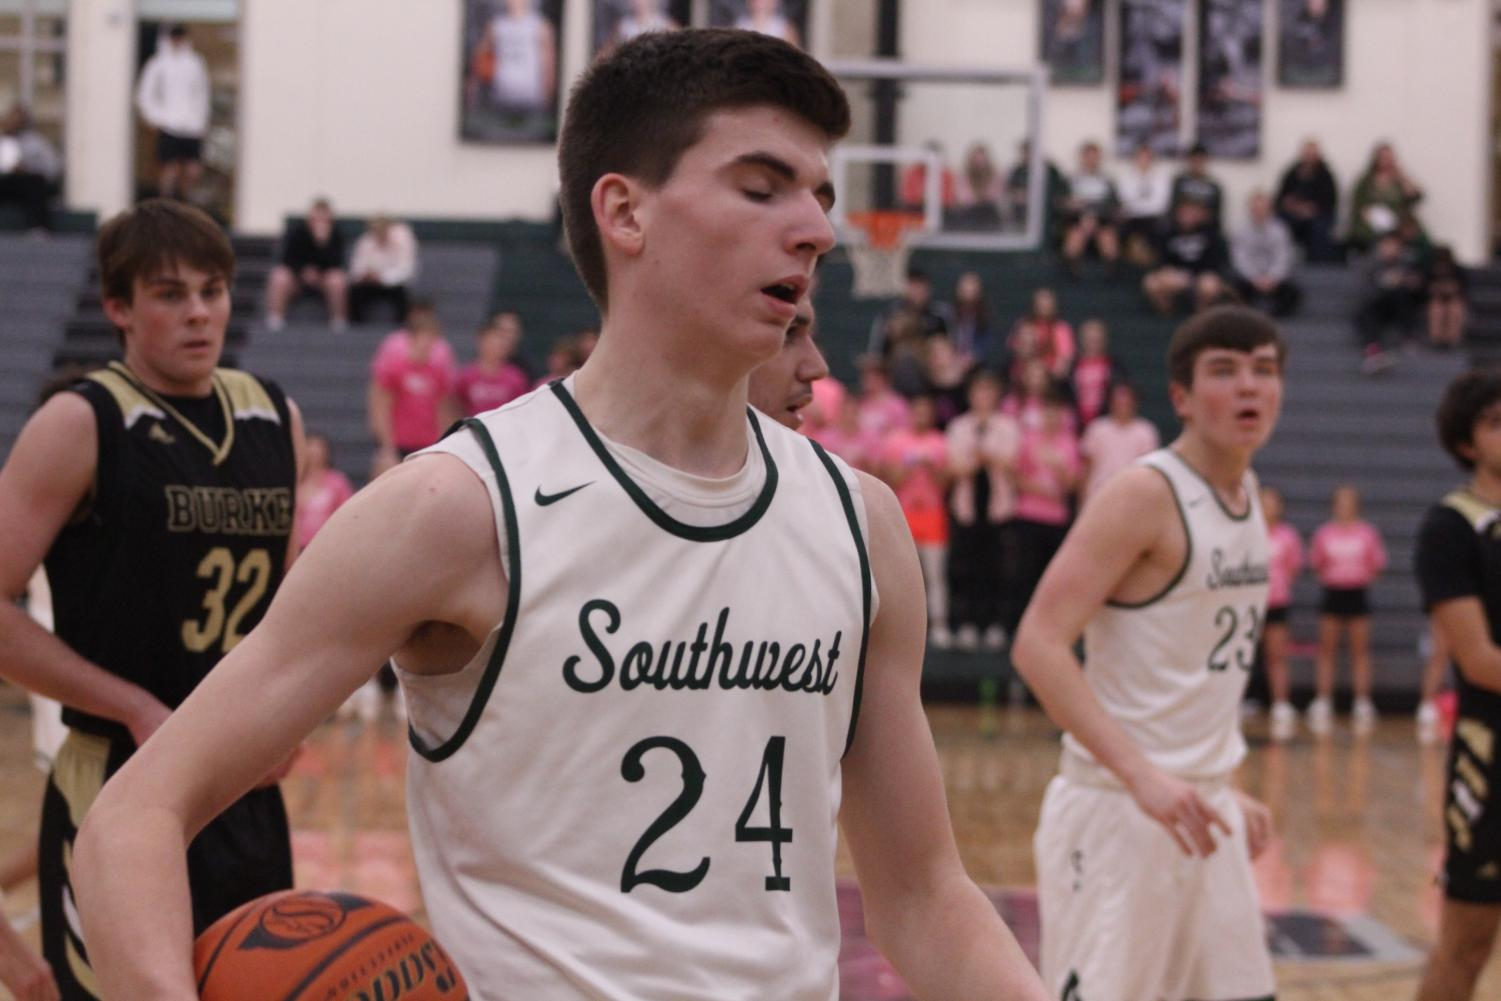 LSW Hoops vs. Lincoln East Recap – My Eyes, My Take: The Beauty of Defeat